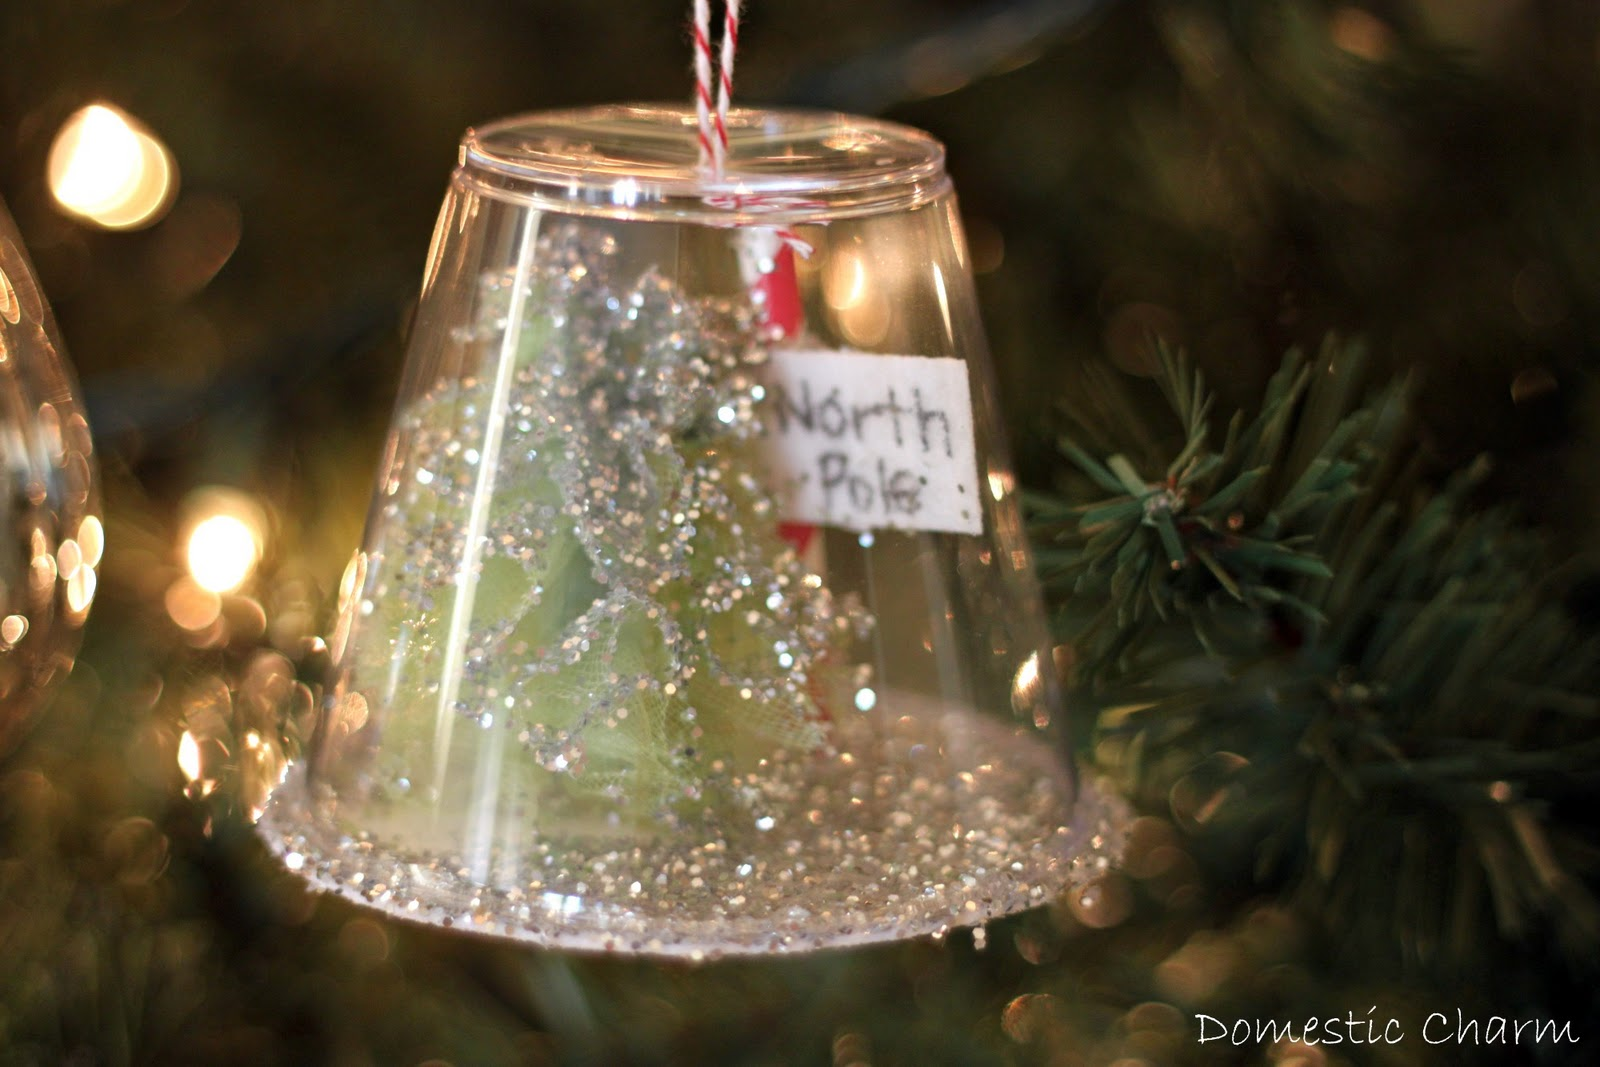 Domestic charm homemade christmas ornament for Homemade christmas ornaments to make